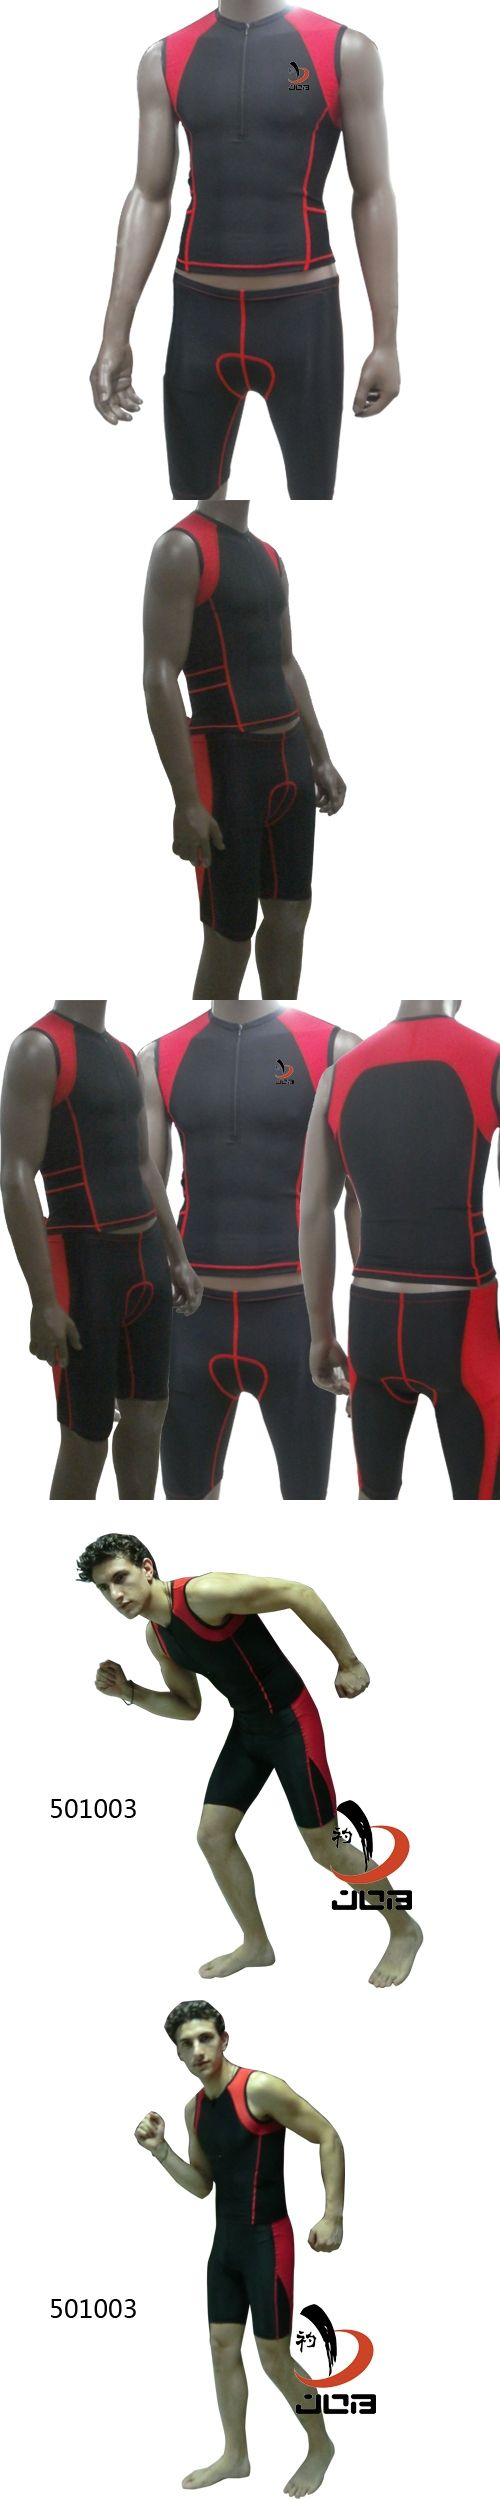 New Arrivals Men's Triathlon Skin Suit Tri Sleeveless Compression Skin Tight Suit Color Black for Cycling Racing Training